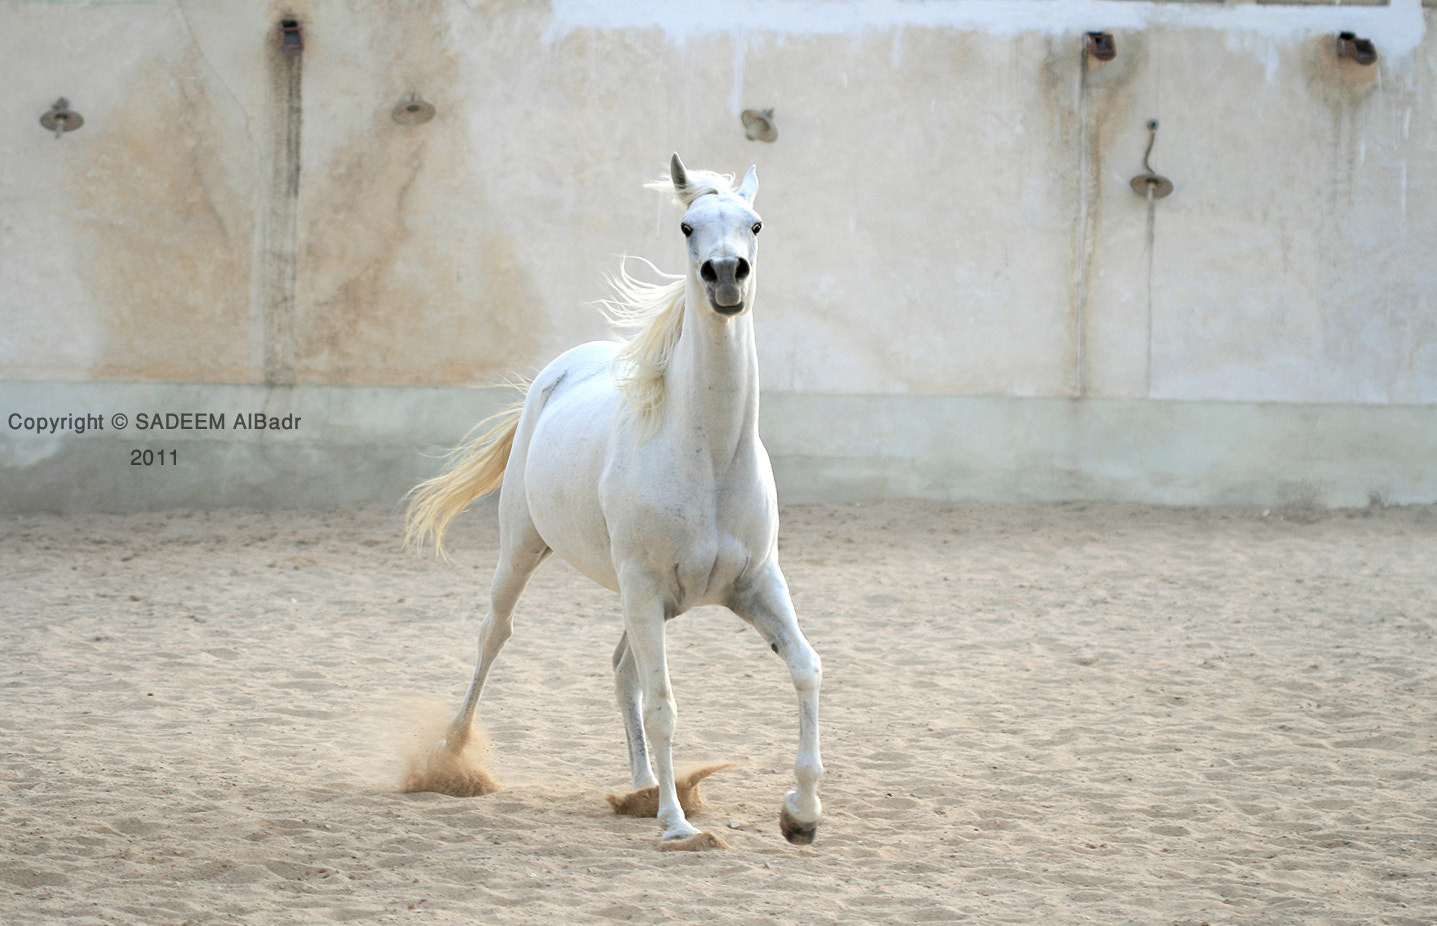 Photograph THE WHITE HORSE .. by SADEEM ALBadr on 500px